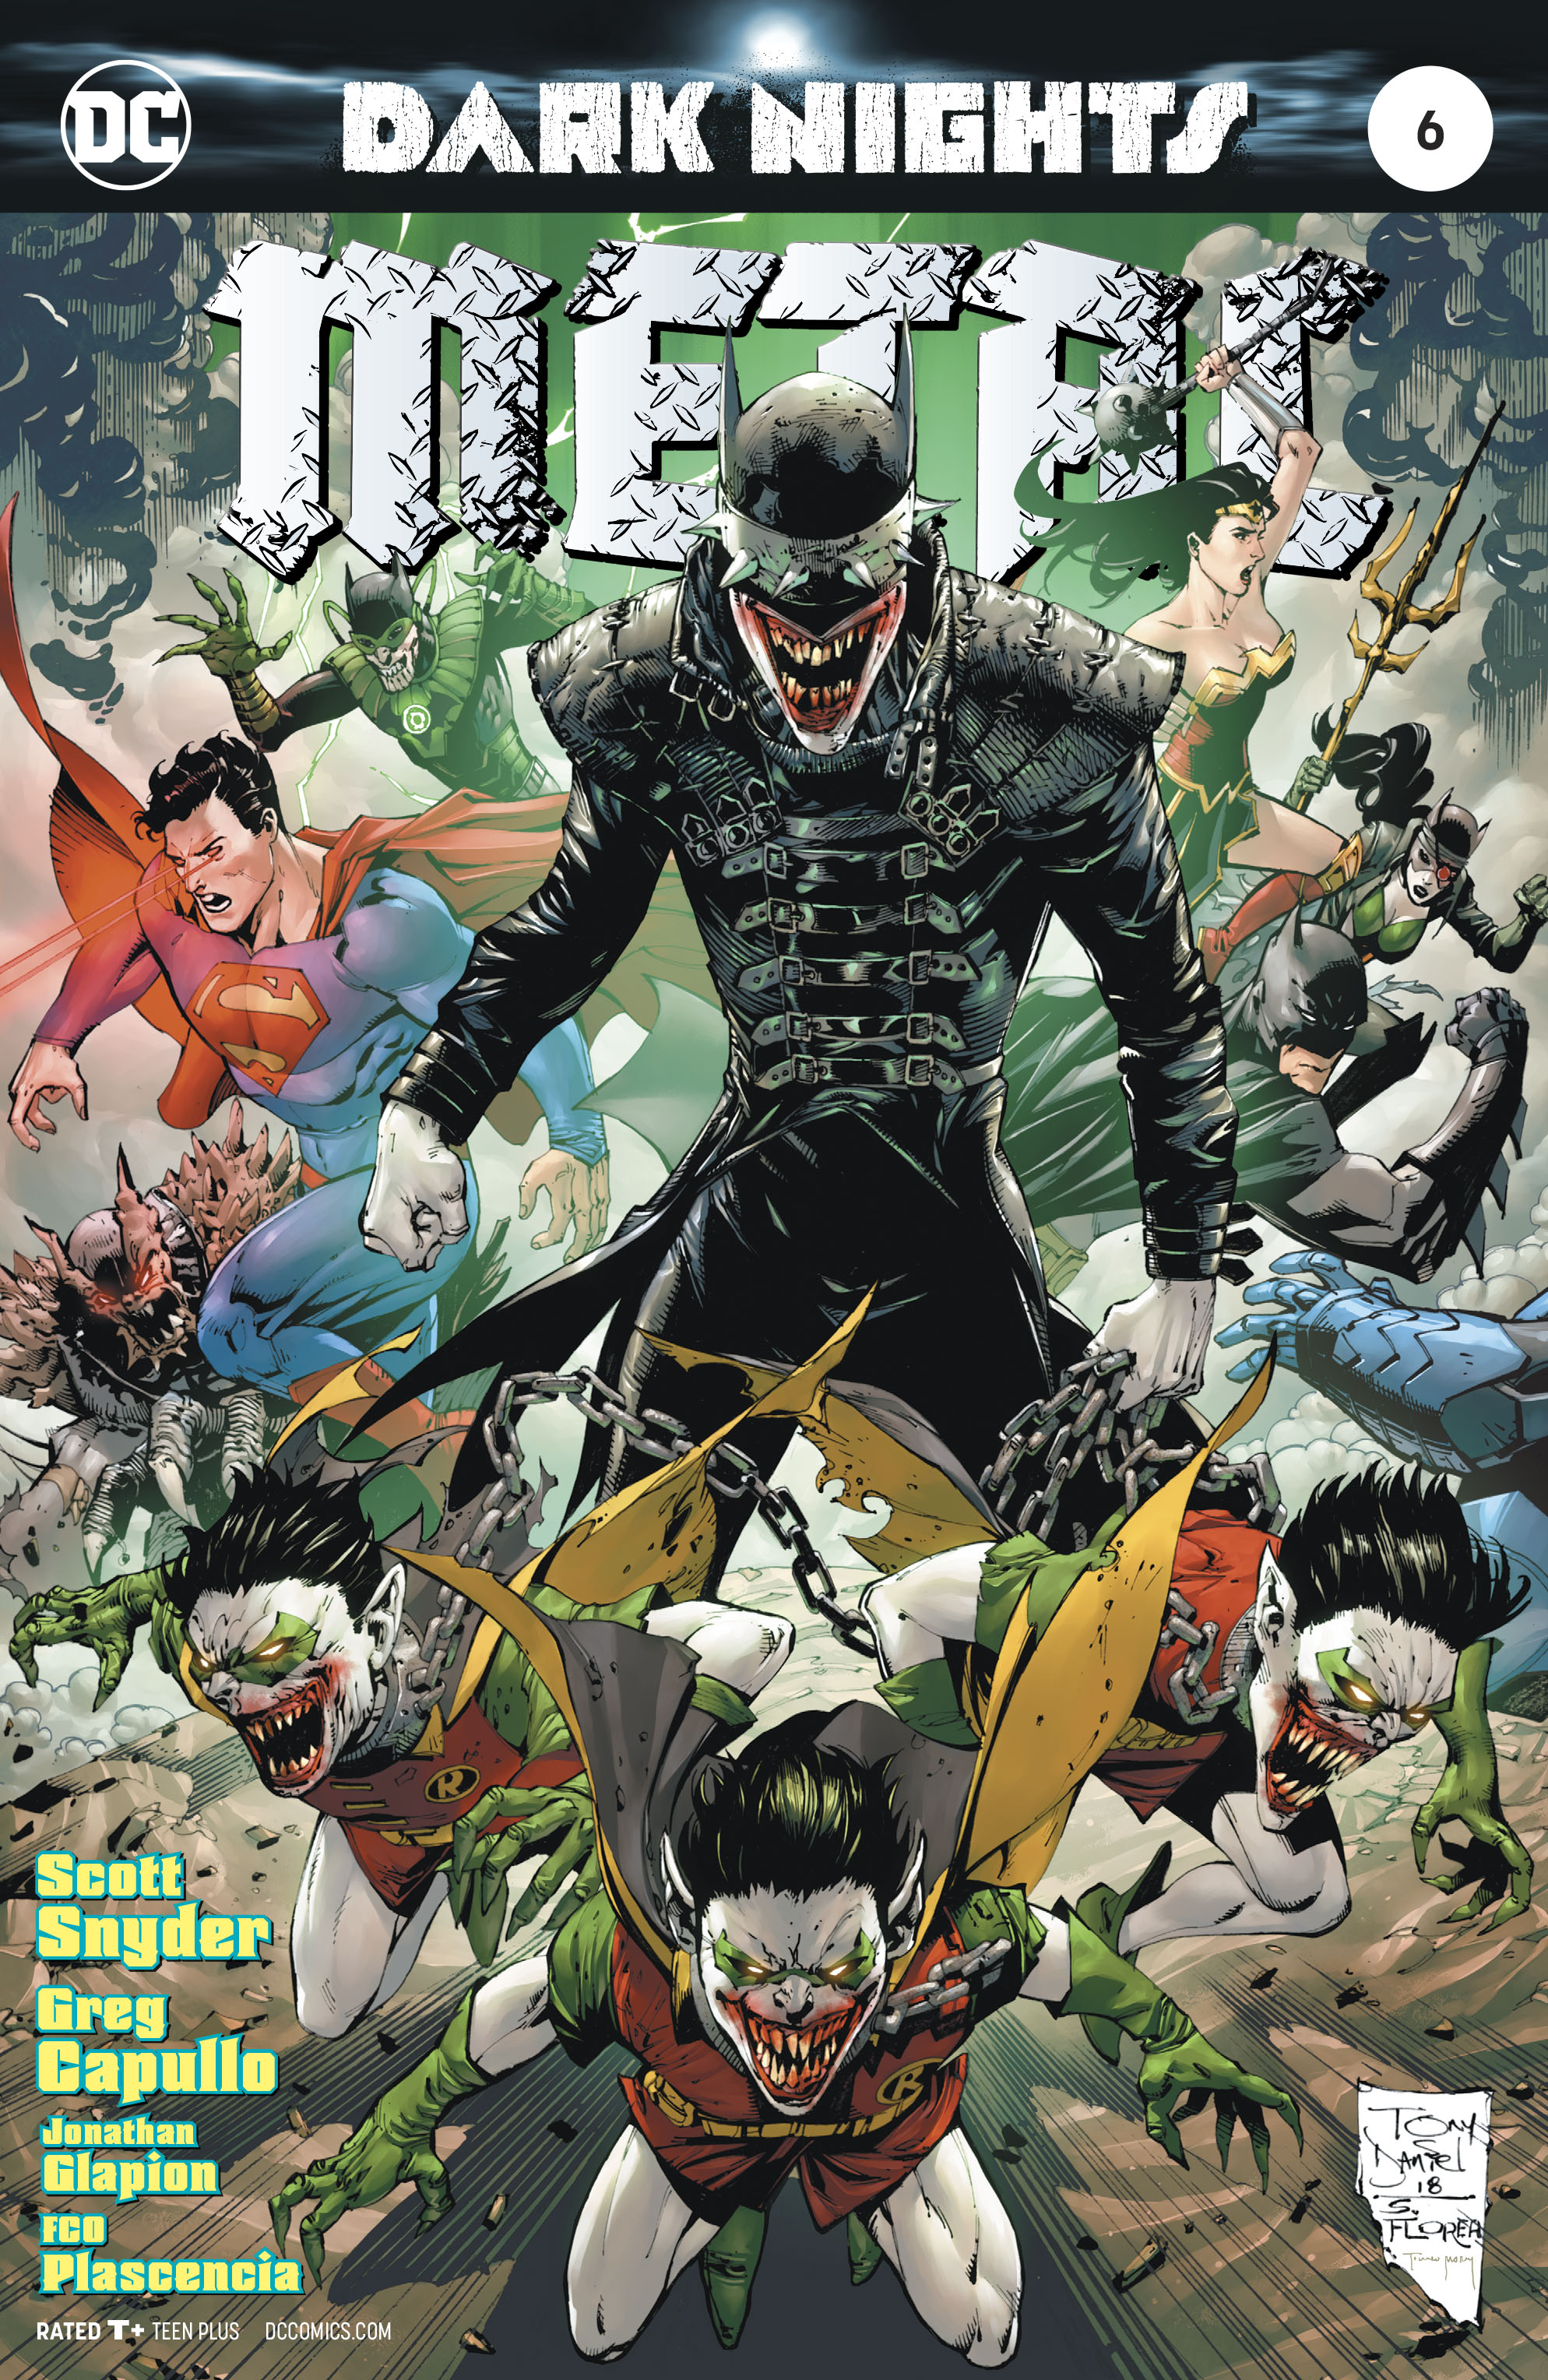 DARK NIGHTS METAL #6 (OF 6) DANIEL VAR ED